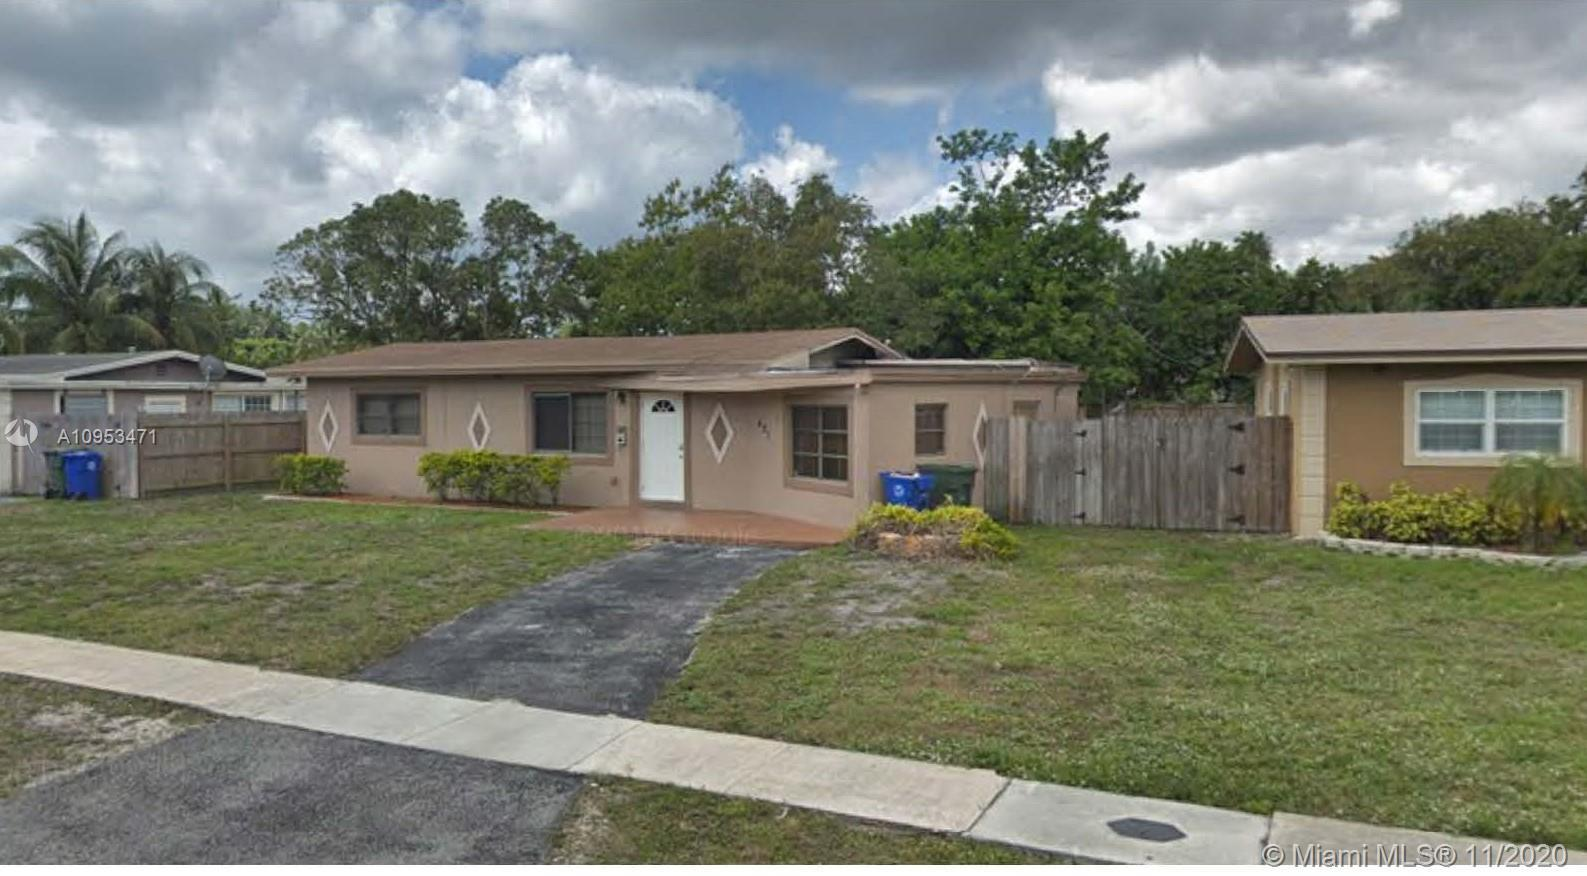 Charming 4 Bedroom 2 Bathroom home with large fenced in yard. The property features exposed wood bea